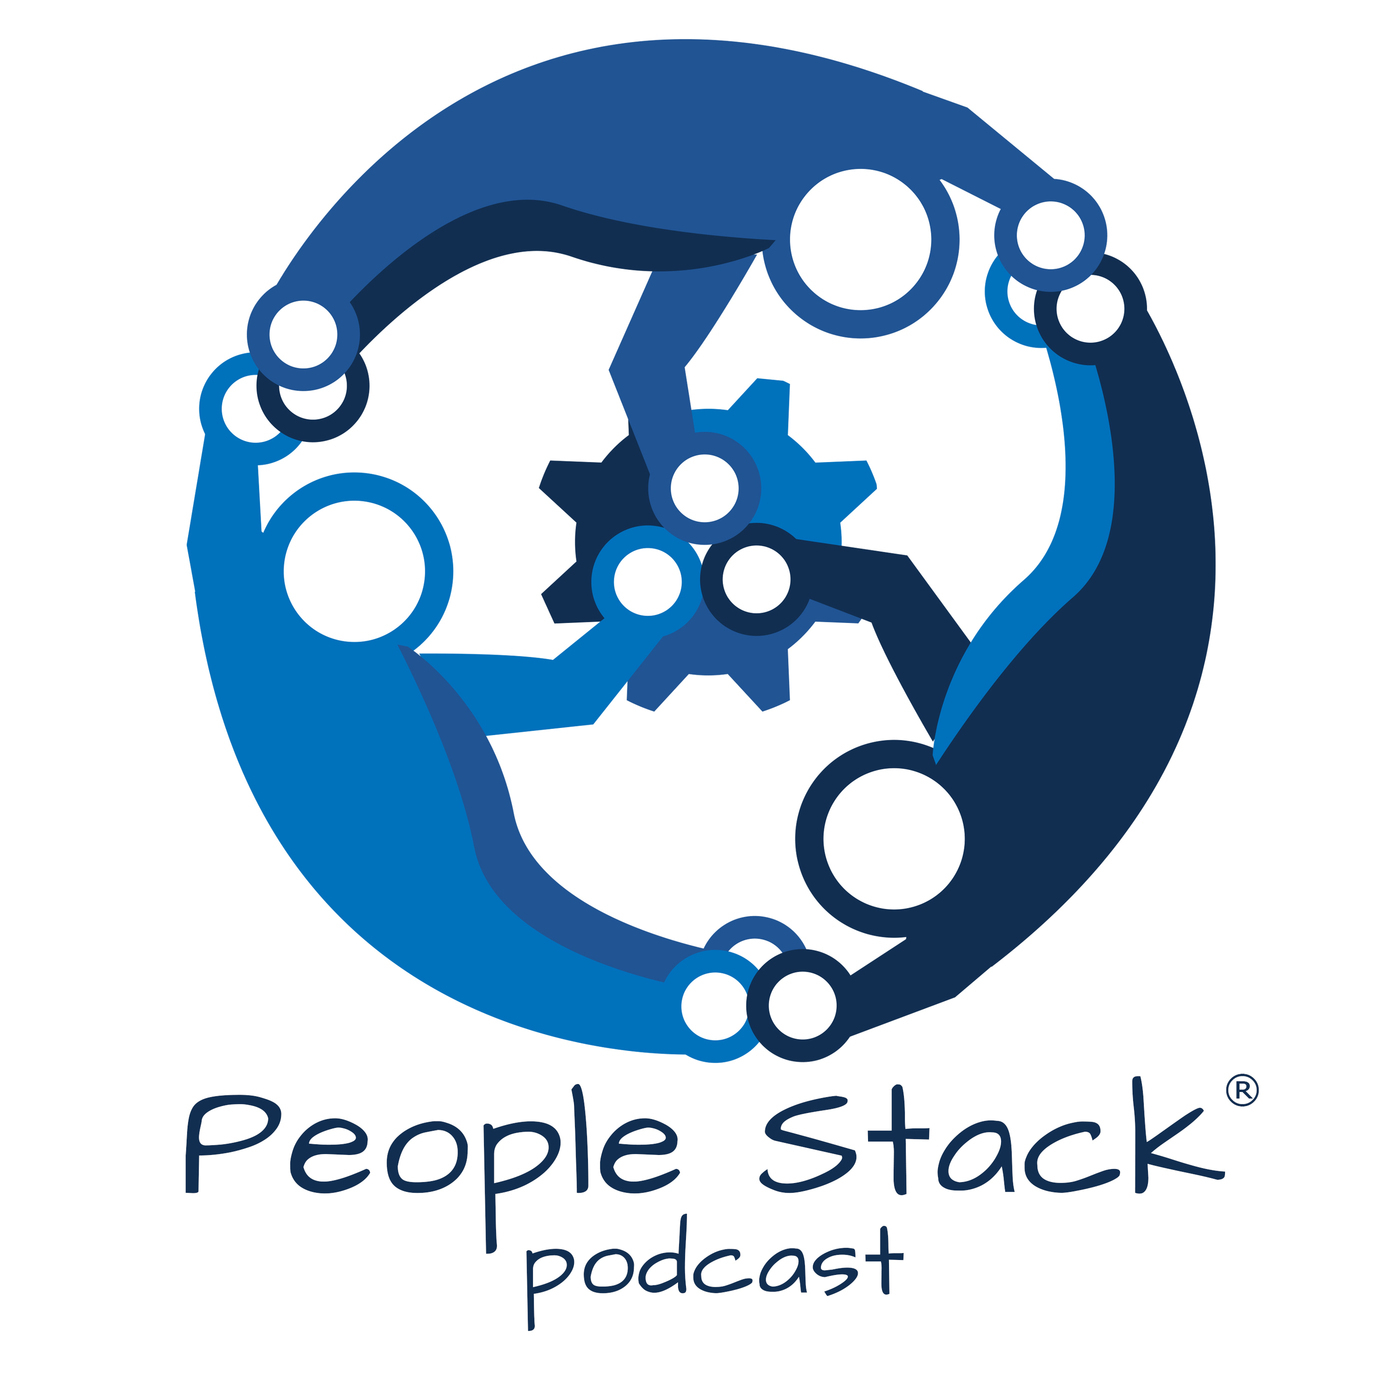 The People Stack Podcast 63: IT Consultant and Podcaster Phil Burgess talks about what he's learned in 100 Podcast Episodes, the future of the IT industry, Productivity, Personal Branding and more